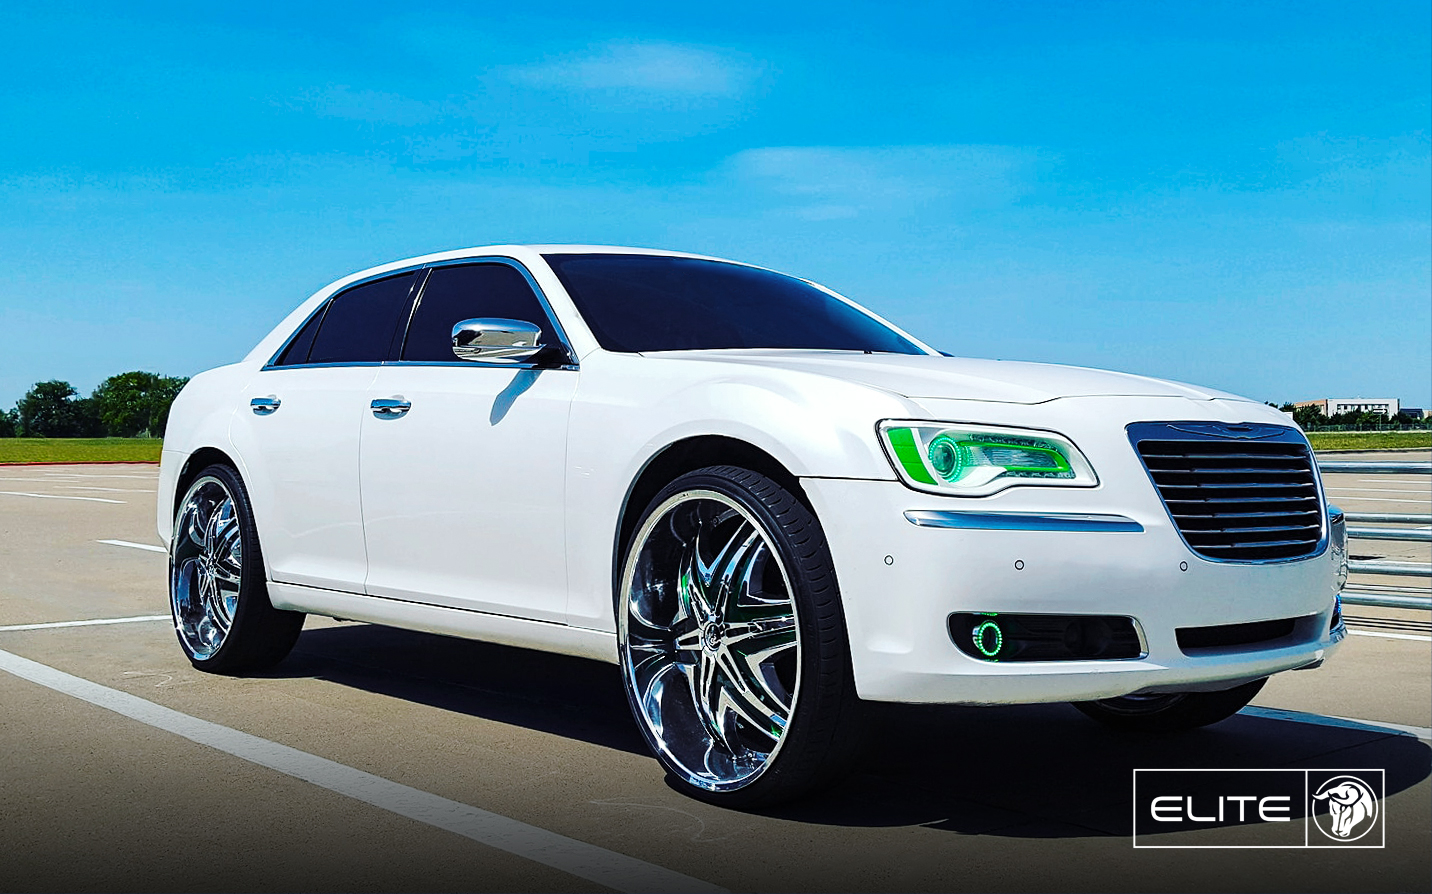 Elite Diablo Wheels Chrysler 300C White Green